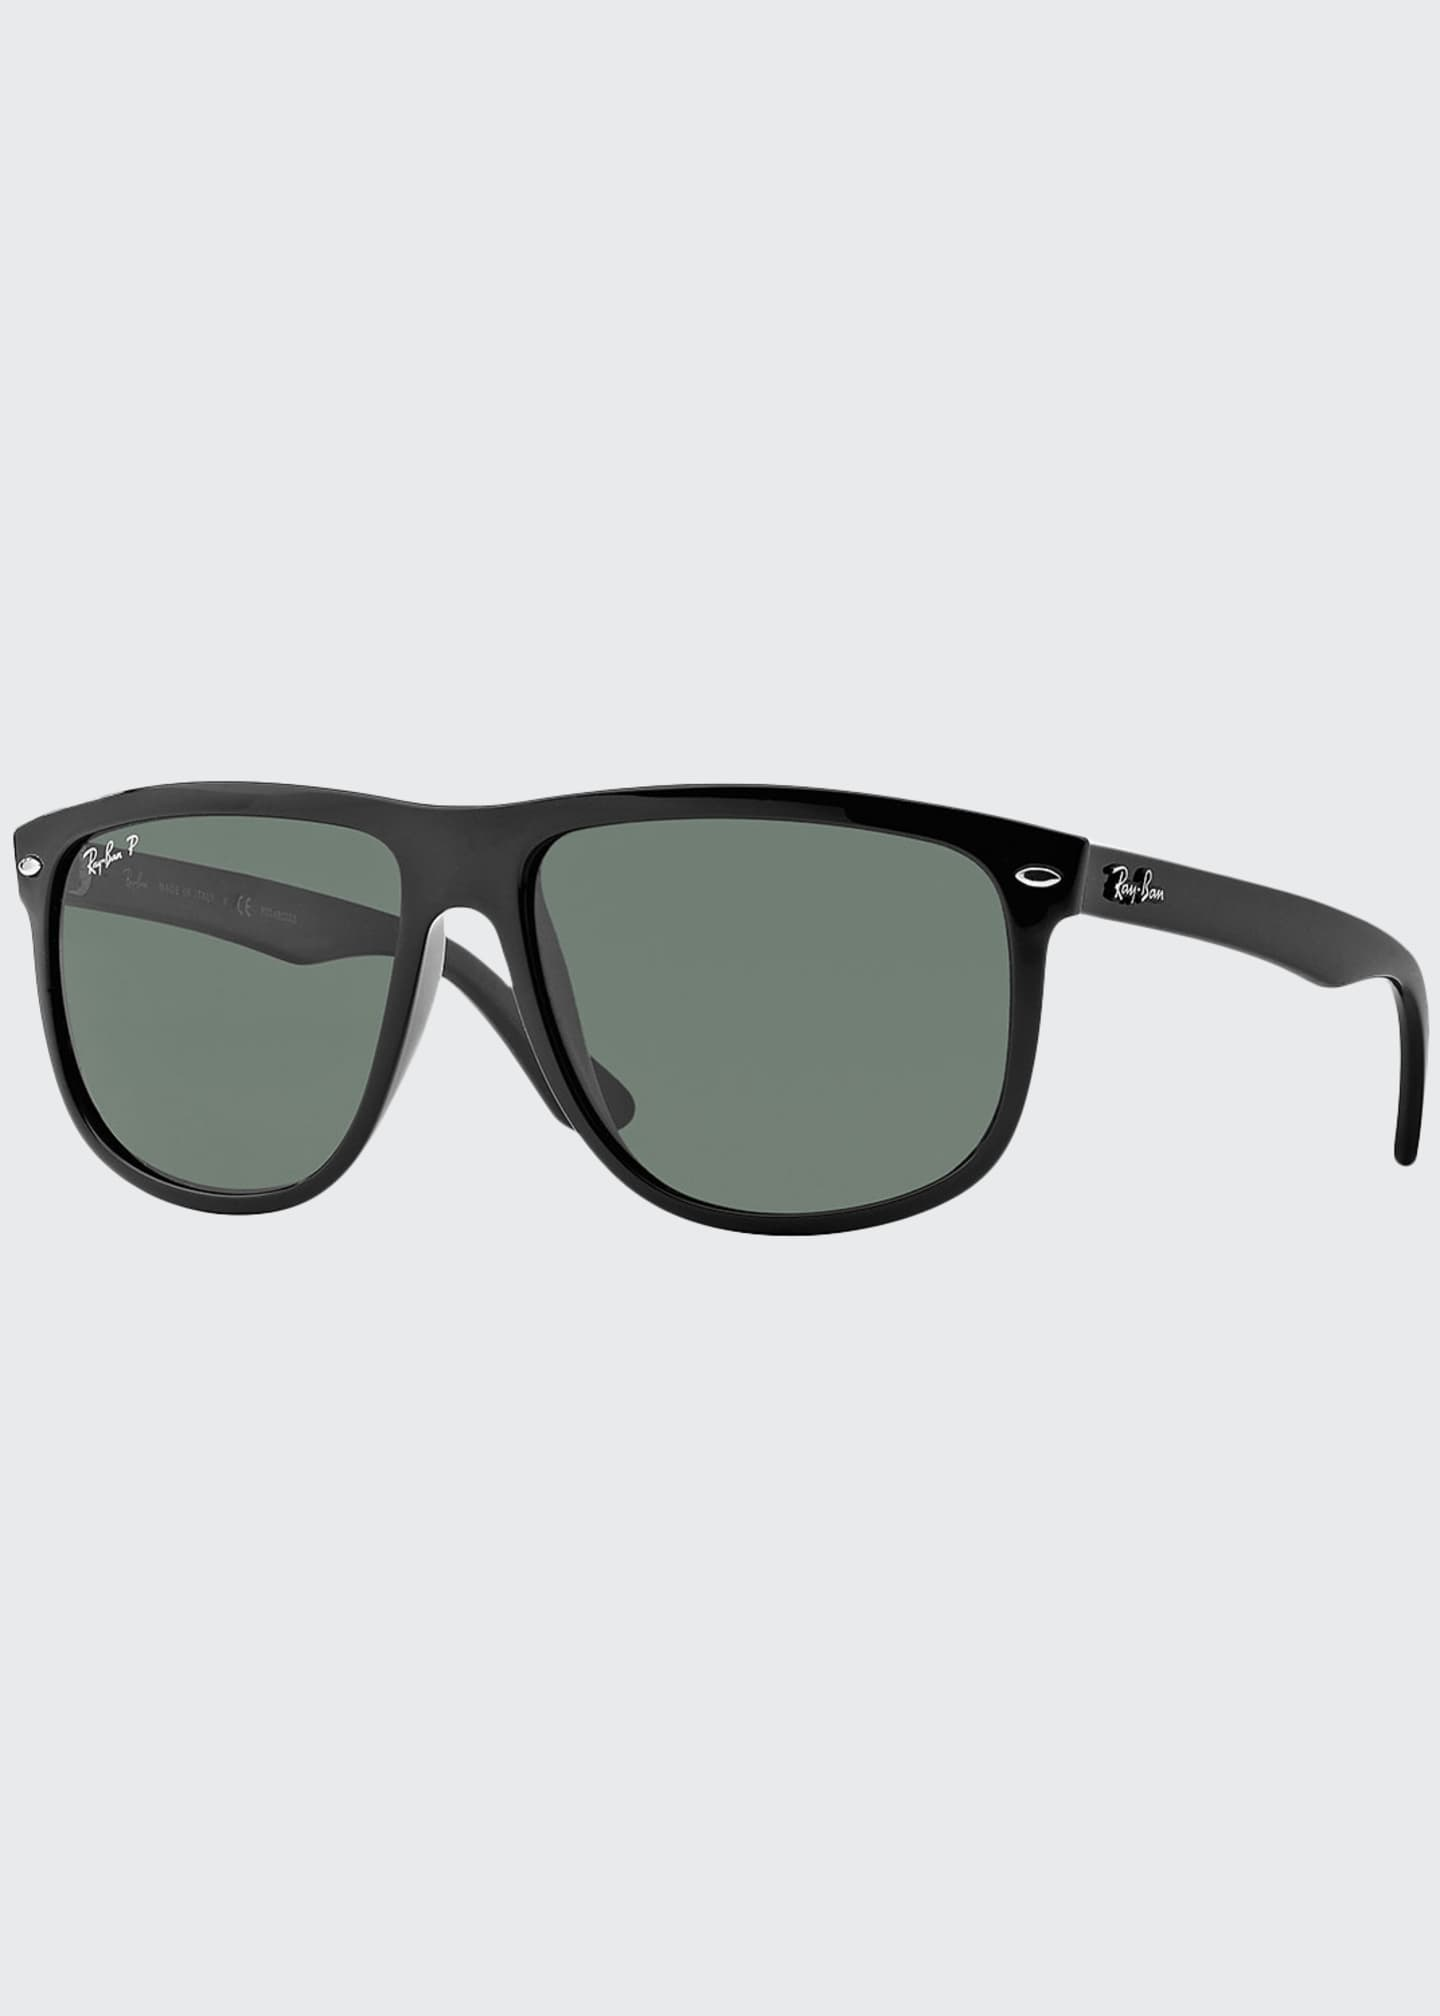 Ray-Ban RB4147 Rounded Square Universal Fit Sunglasses